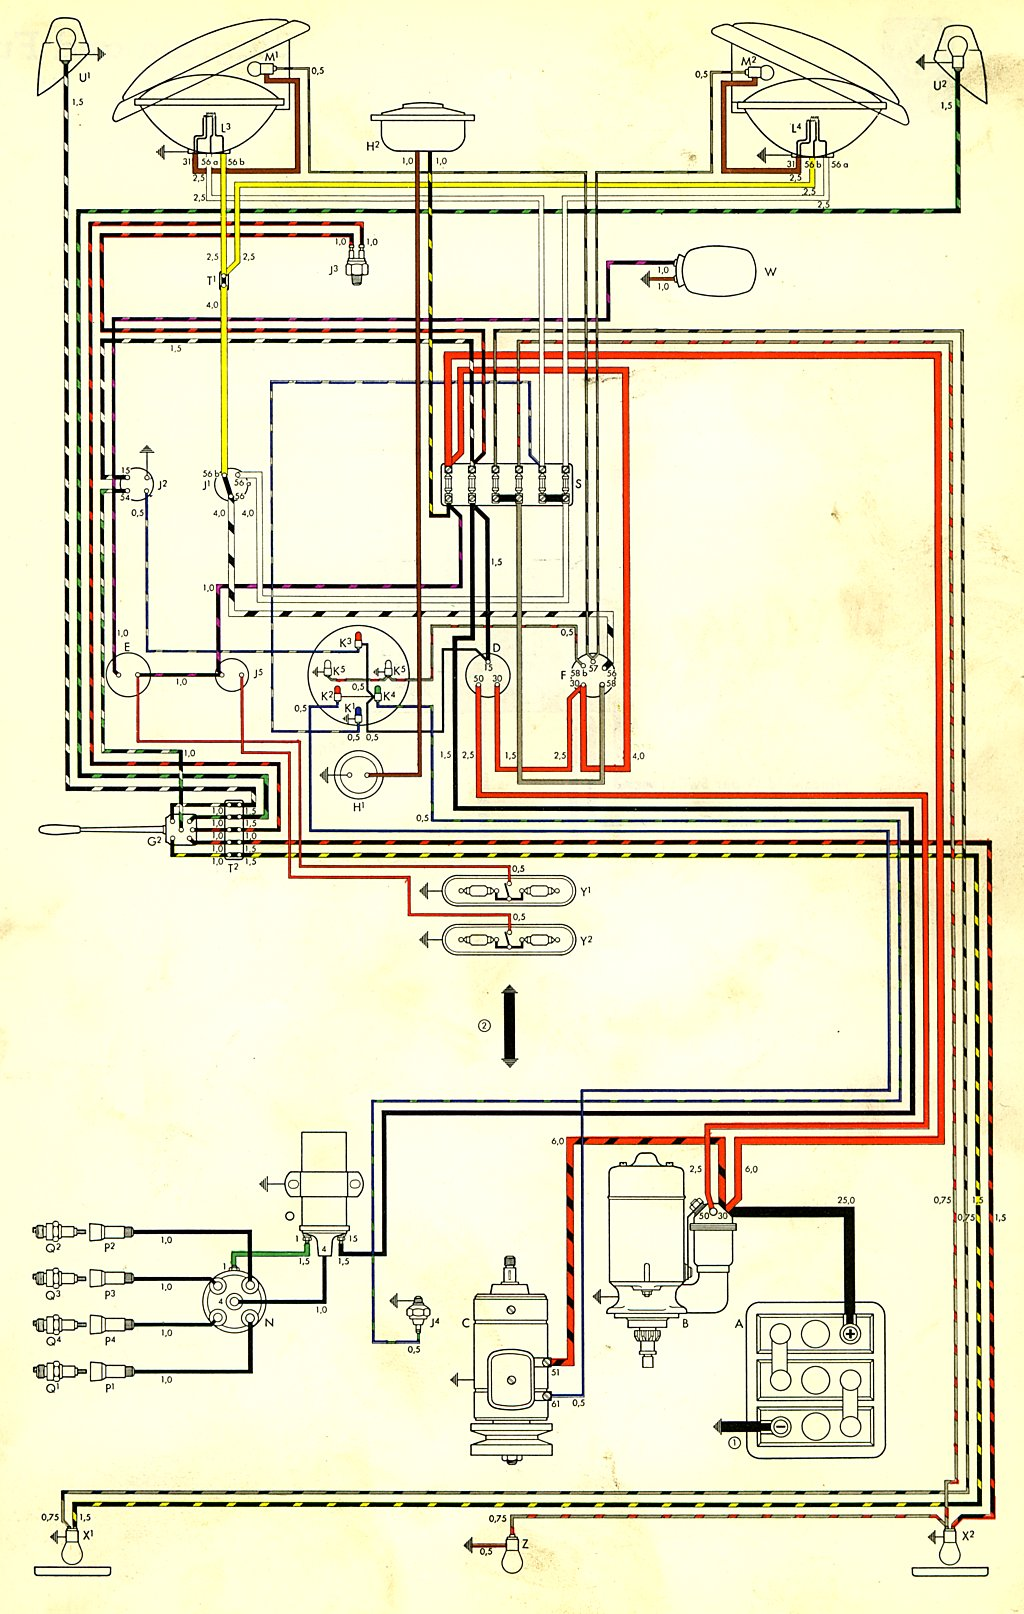 75 vw bus wiring diagrams 18 7 stromoeko de \u2022 thesamba com type 2 wiring diagrams rh thesamba com 1968 vw bus wiring diagram 1968 vw bus wiring diagram